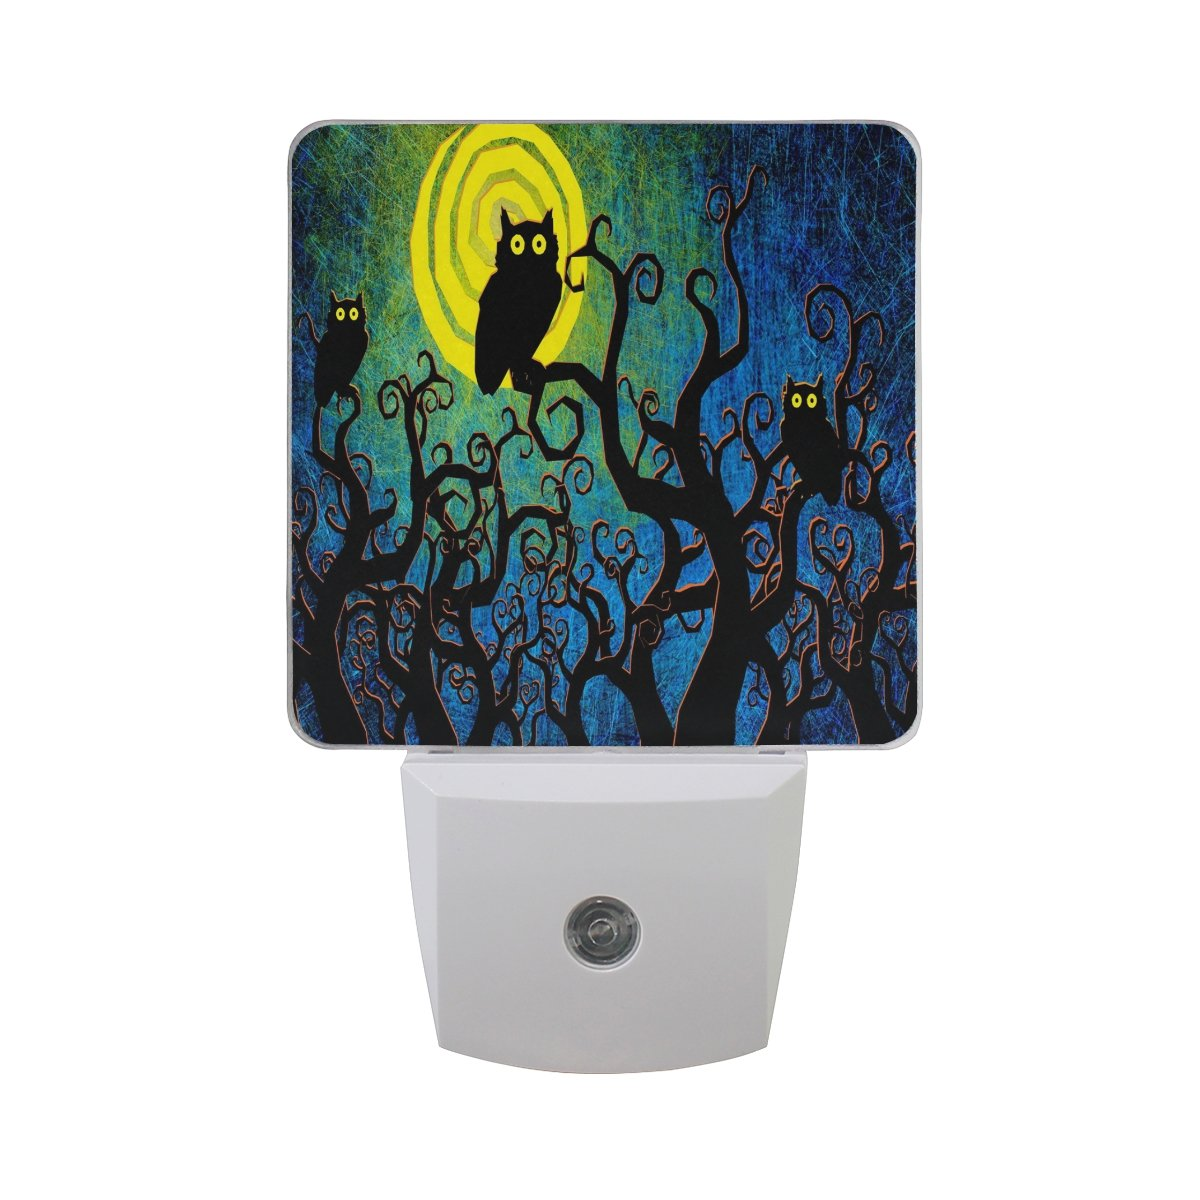 Alaza Halloween Night Owl Owlet Branch Tree Painting LED Night Light Dusk to Dawnセンサープラグin Night Home Decorデスクランプfor Adult B07BFD7GZ1 13554